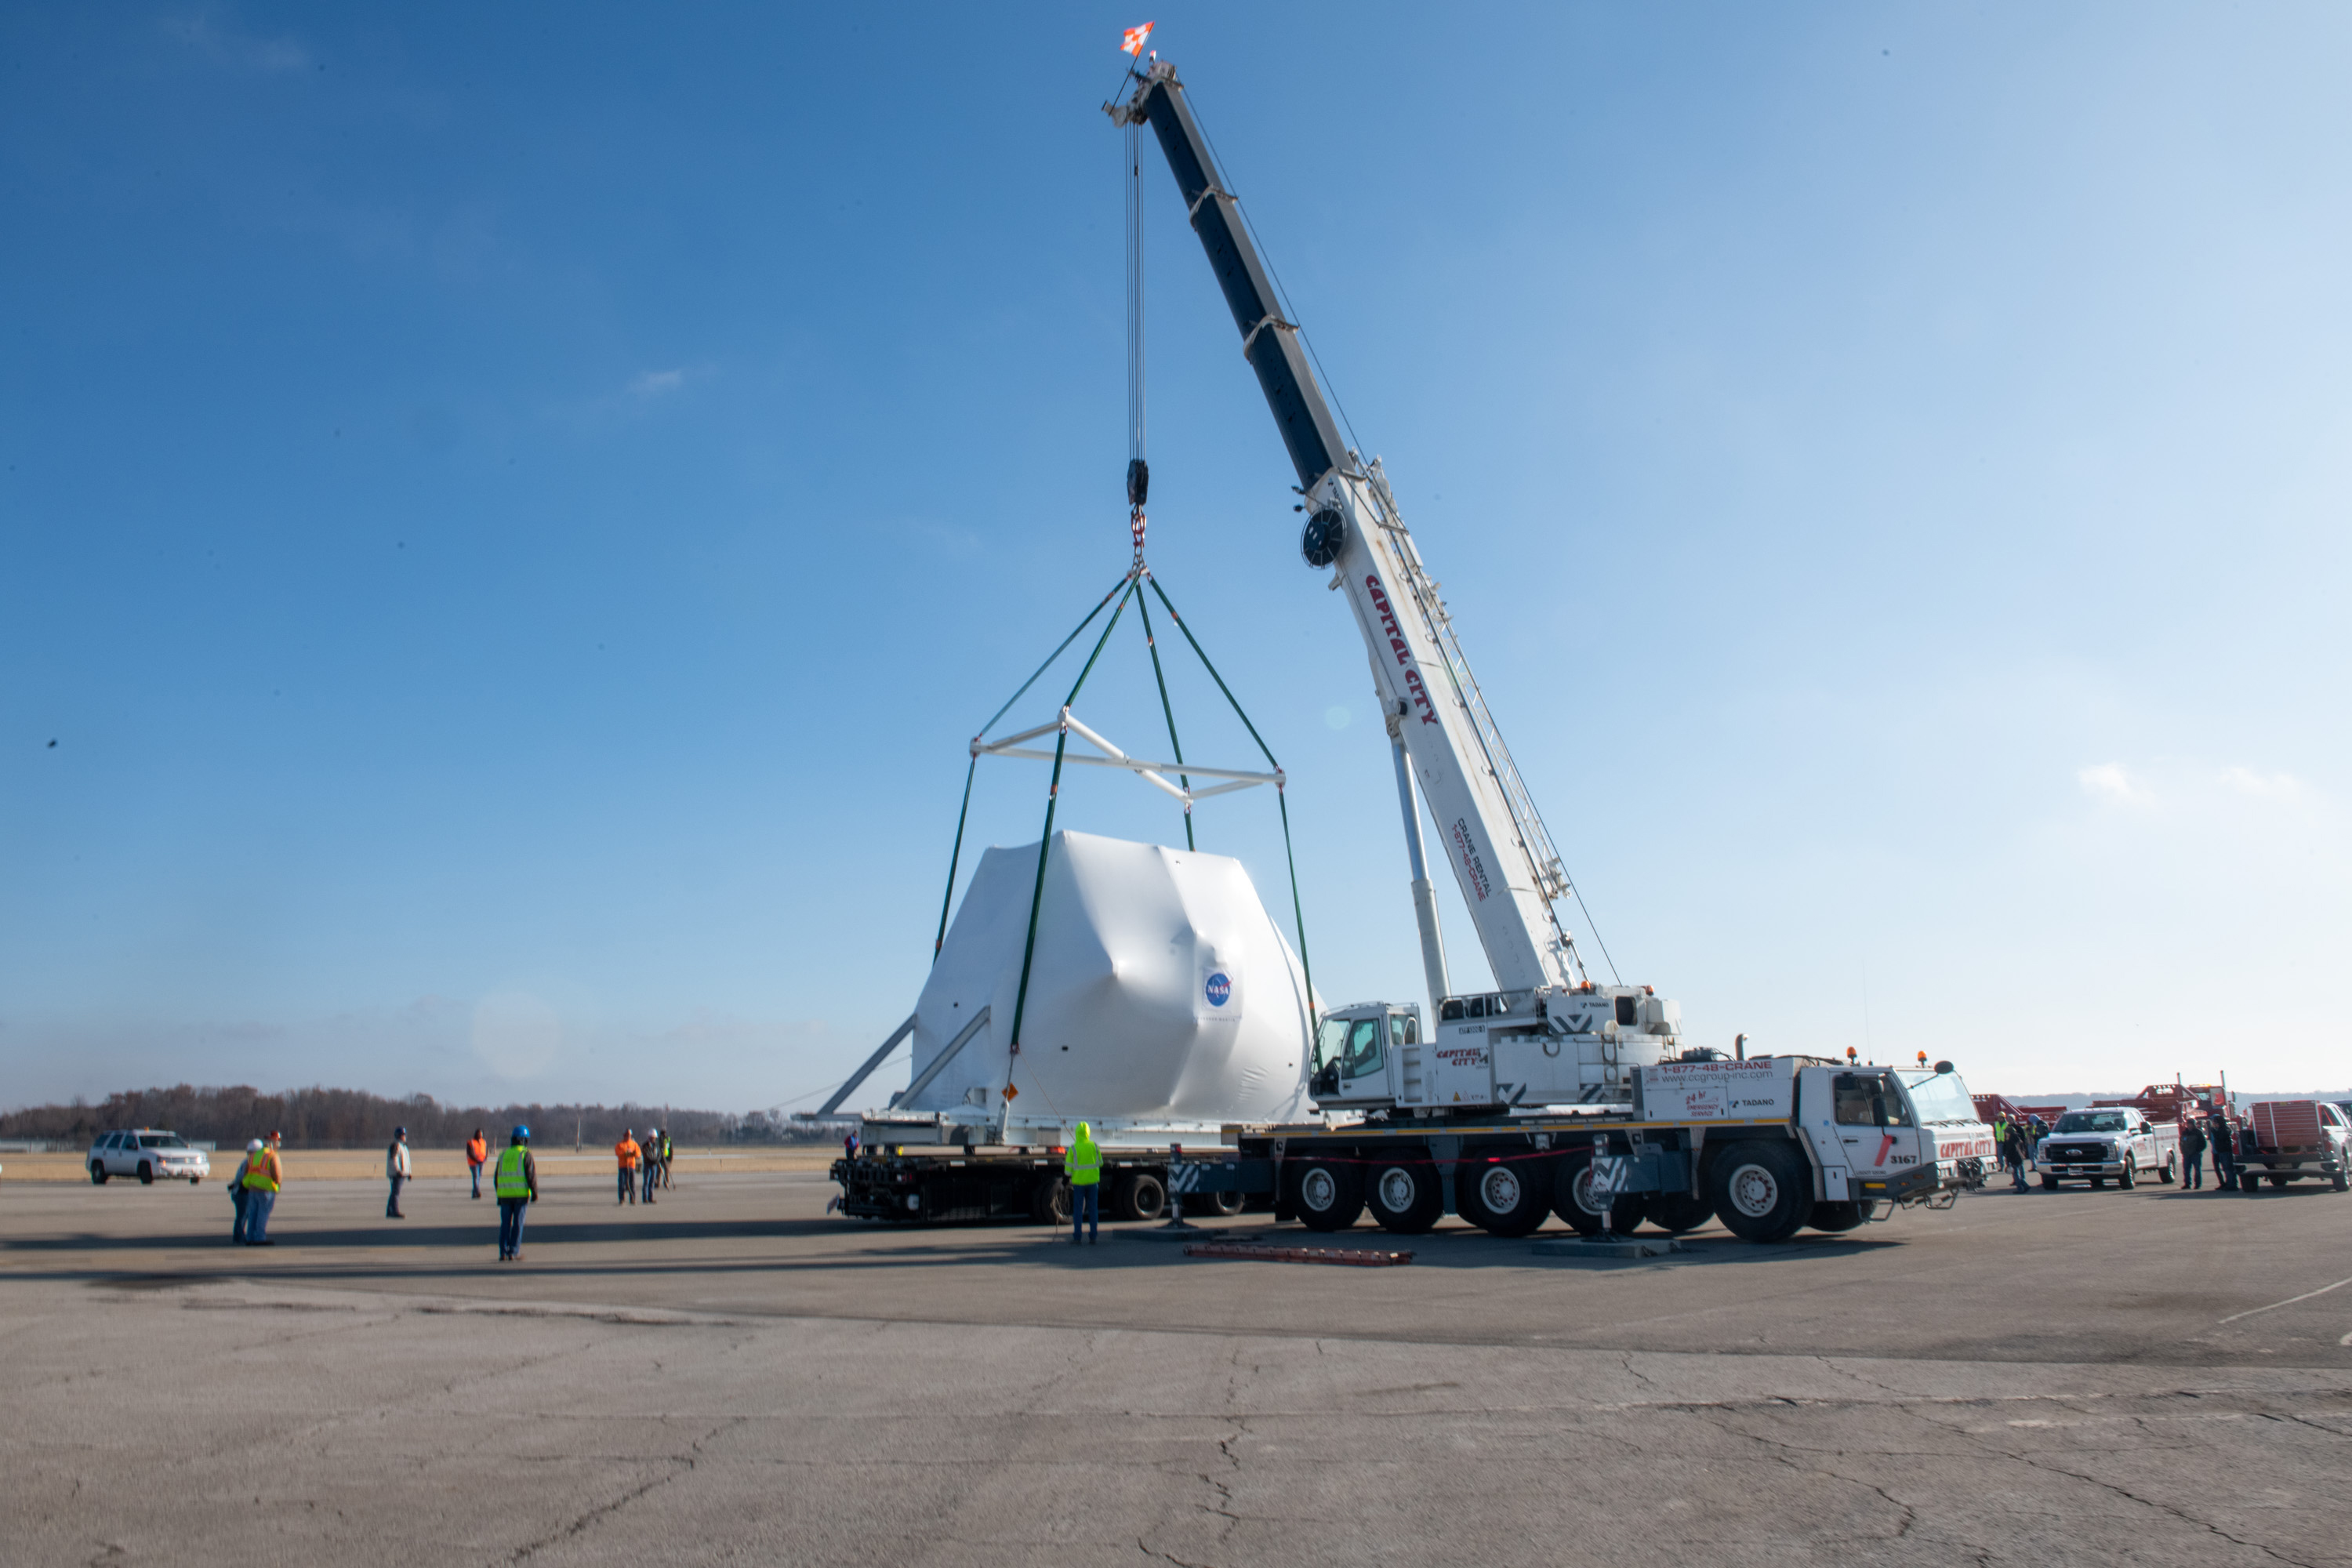 The Orion spacecraft being lifted onto the truck for transport to NASA's Plum Brook Station. Credits: NASA.